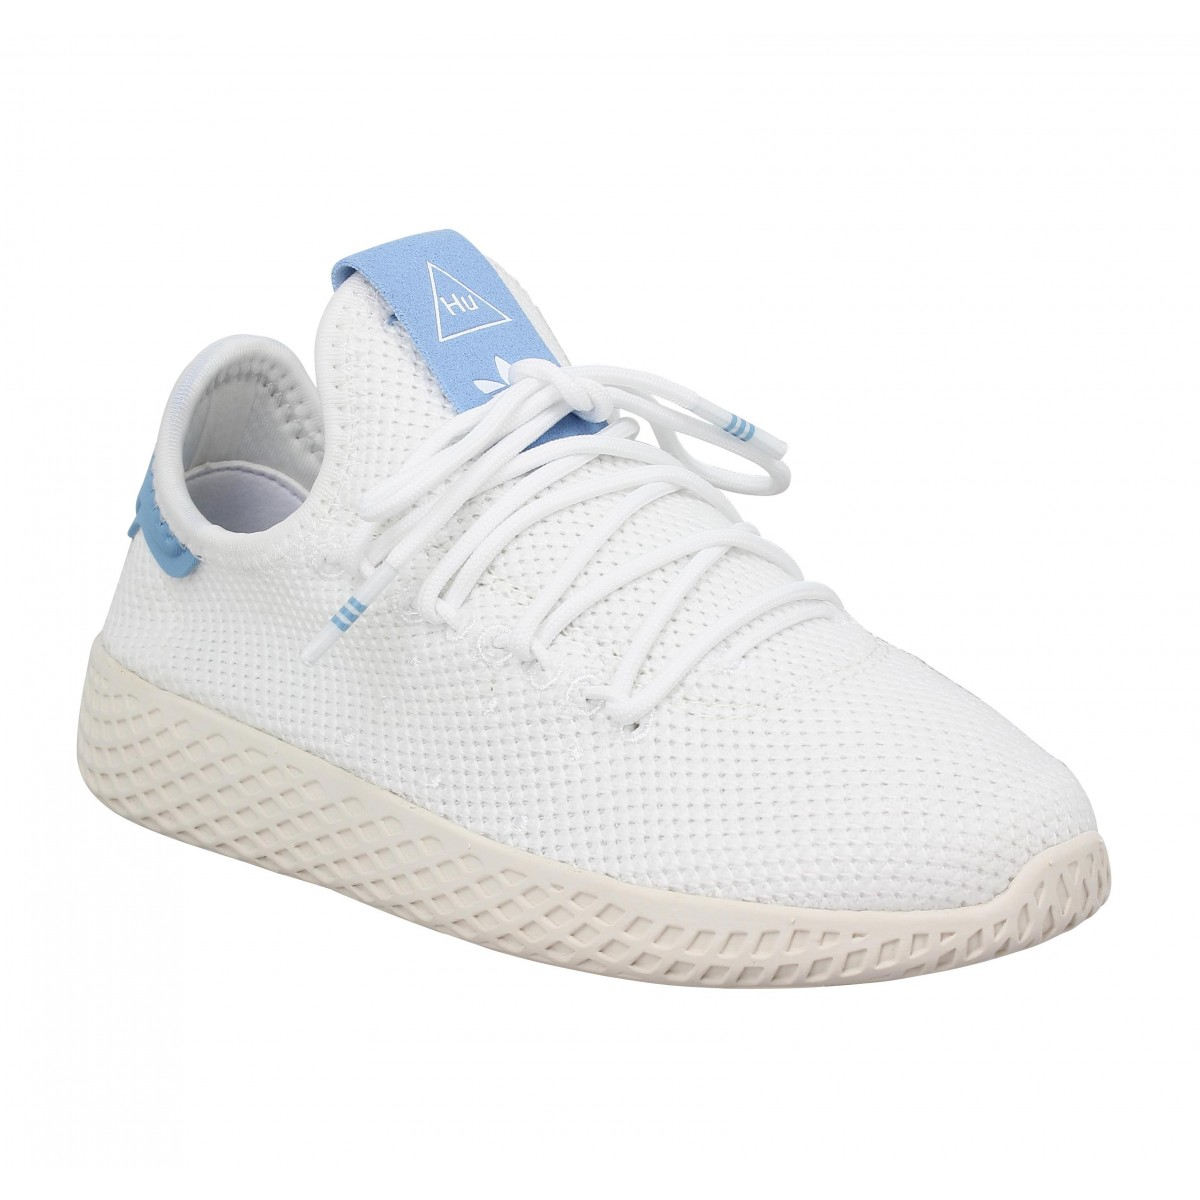 Baskets ADIDAS X PHARRELL WILLIAMS PW Tennis mesh Enfant Blanc Bleu